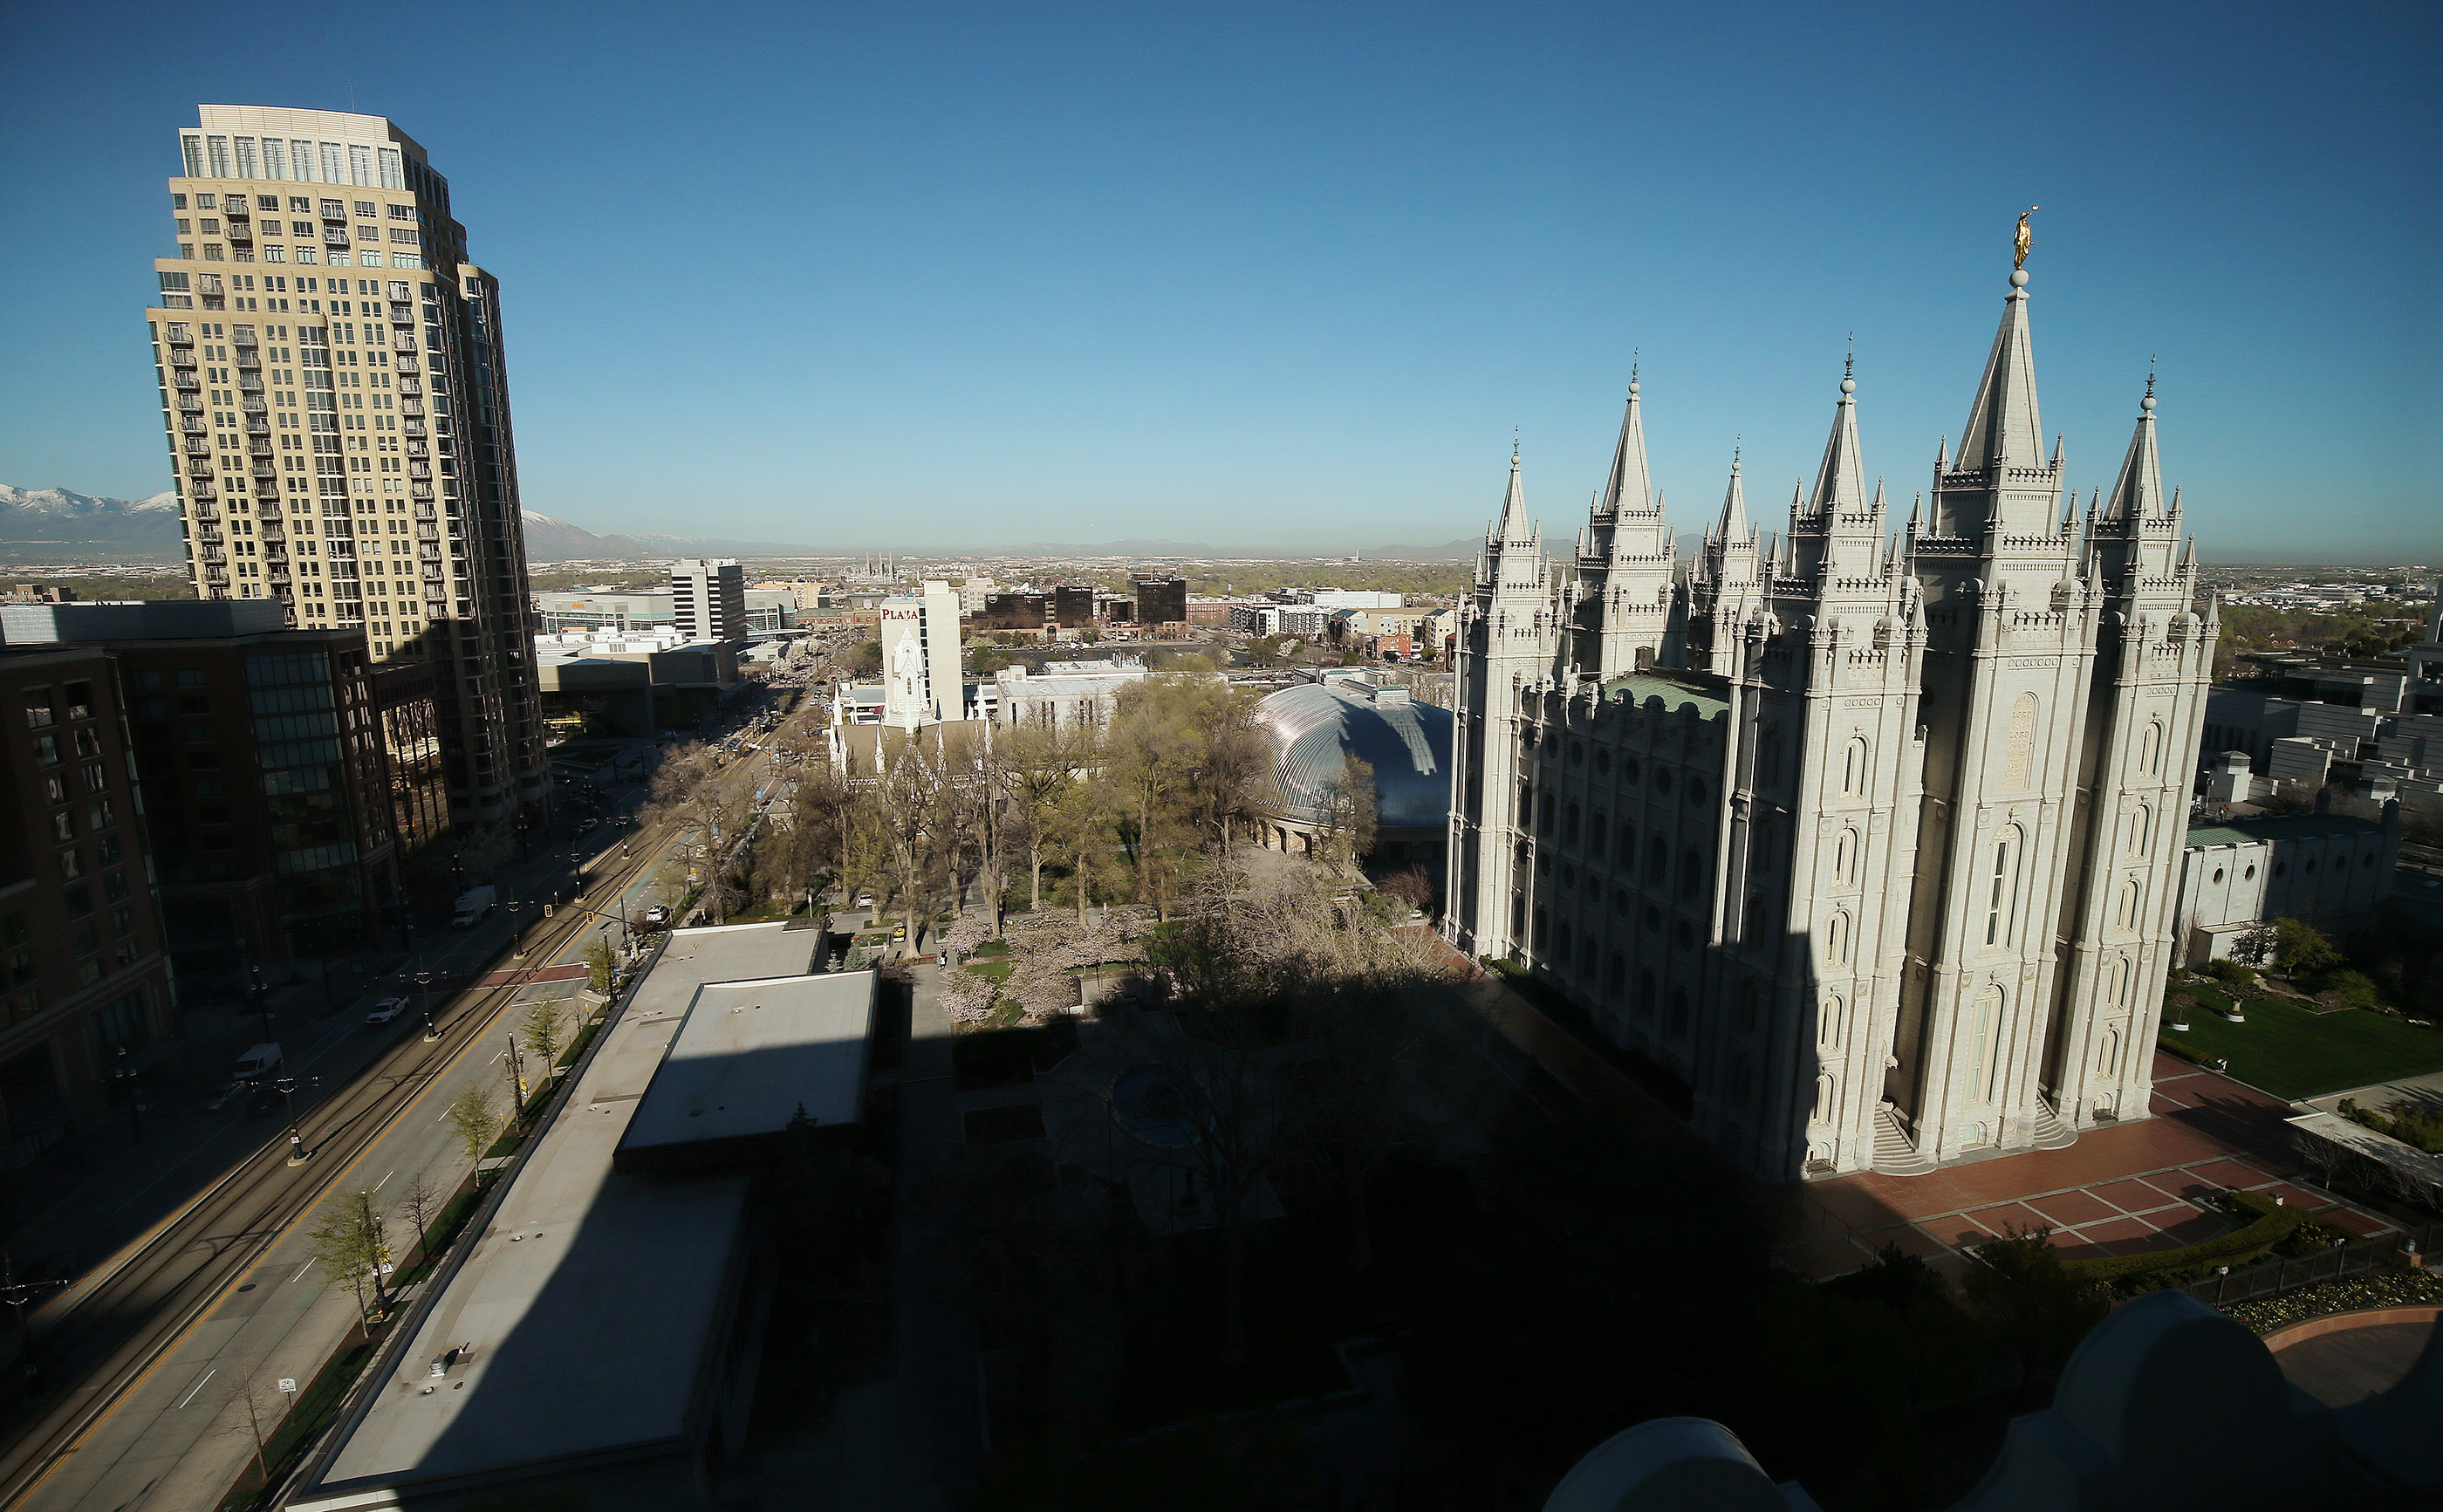 The Salt Lake Temple in Salt Lake City on Friday, April 19, 2019. Leadership of The Church of Jesus Christ of Latter-day Saints on Friday announced renovation plans for the Salt Lake Temple and changes to the temple grounds and Temple Square.